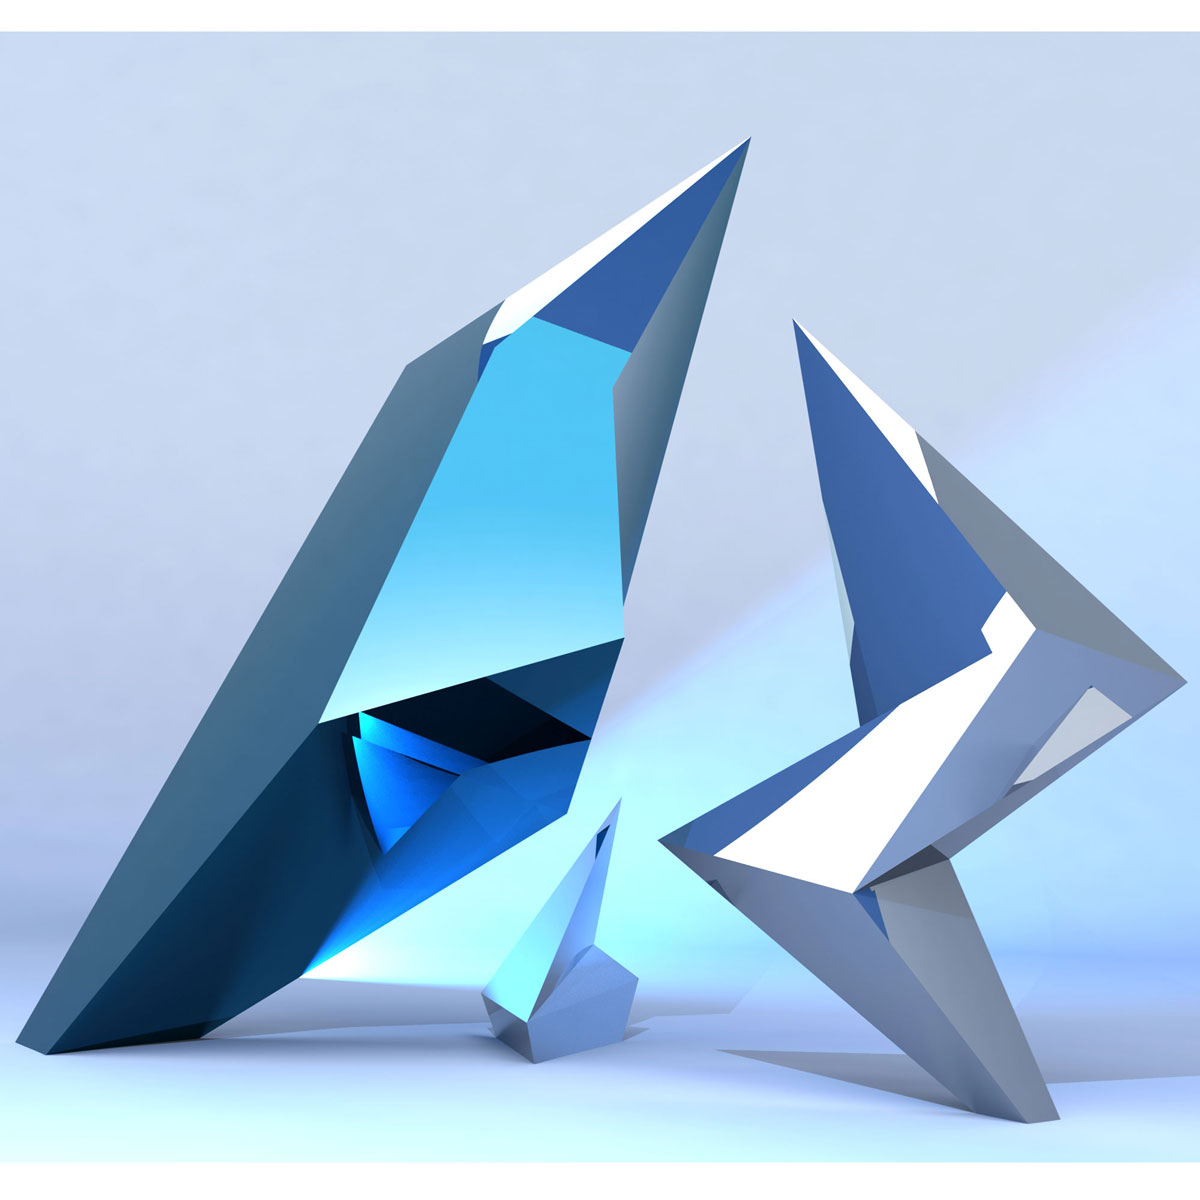 Jagged | Contemporary, Modern Interior Design Sculpture